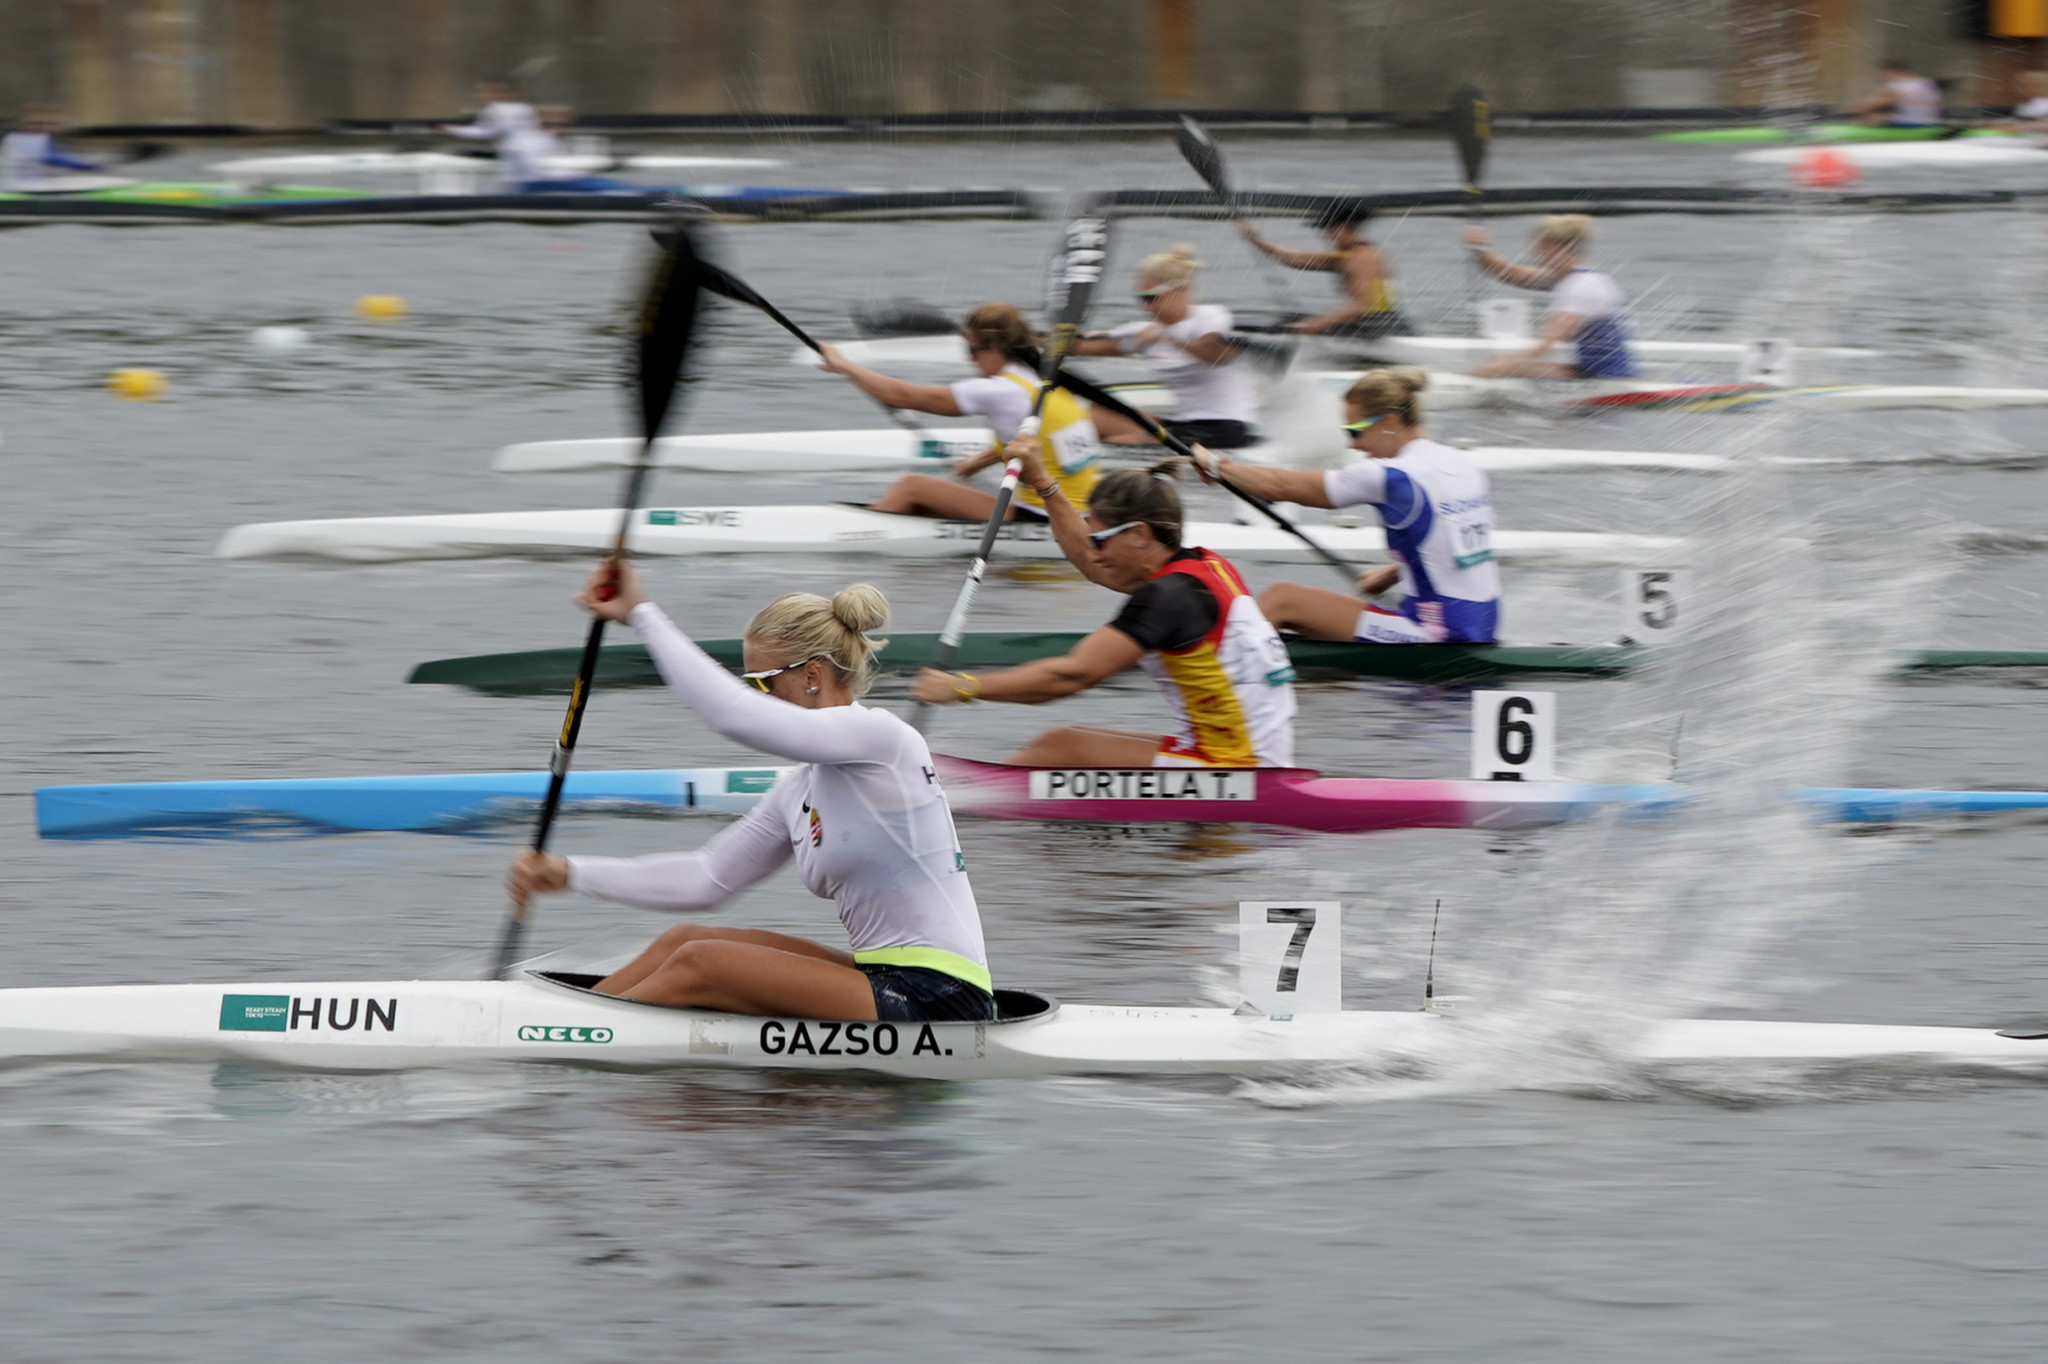 Kiss gives hosts Hungary gold at Szeged Paracanoe World Cup